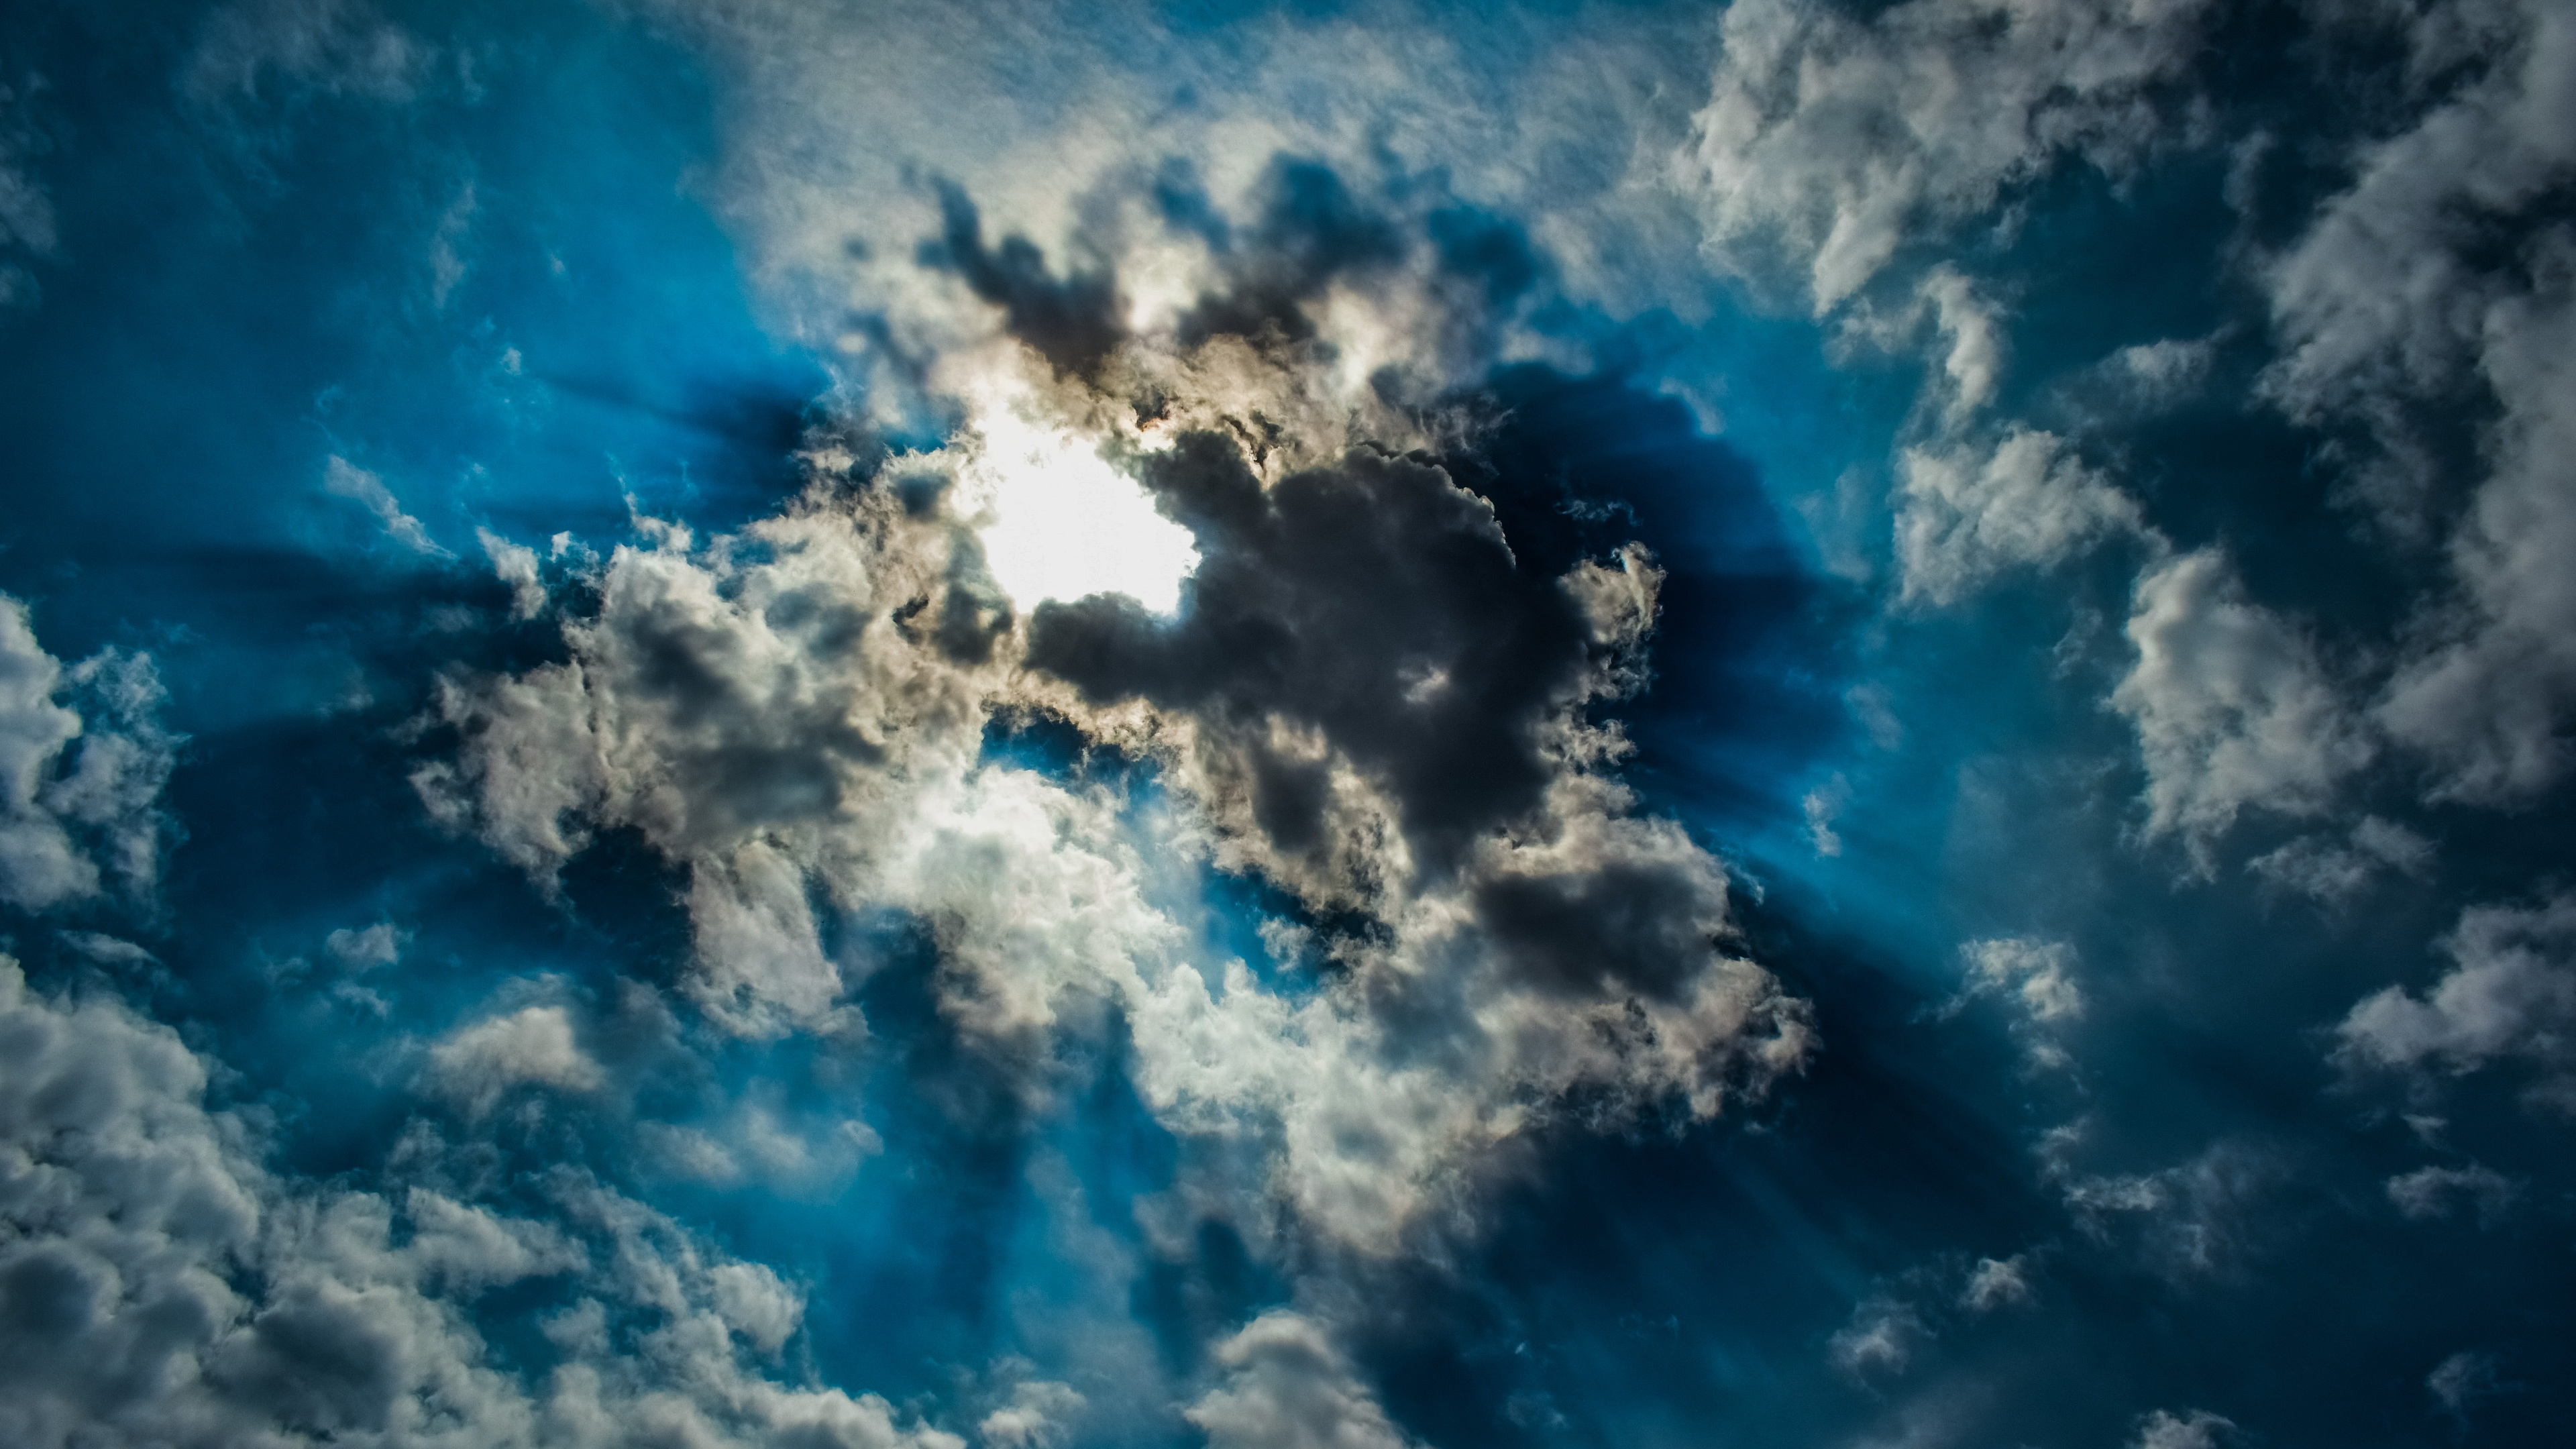 heaven clouds 1540140949 - Heaven Clouds - nature wallpapers, hd-wallpapers, clouds wallpapers, 4k-wallpapers